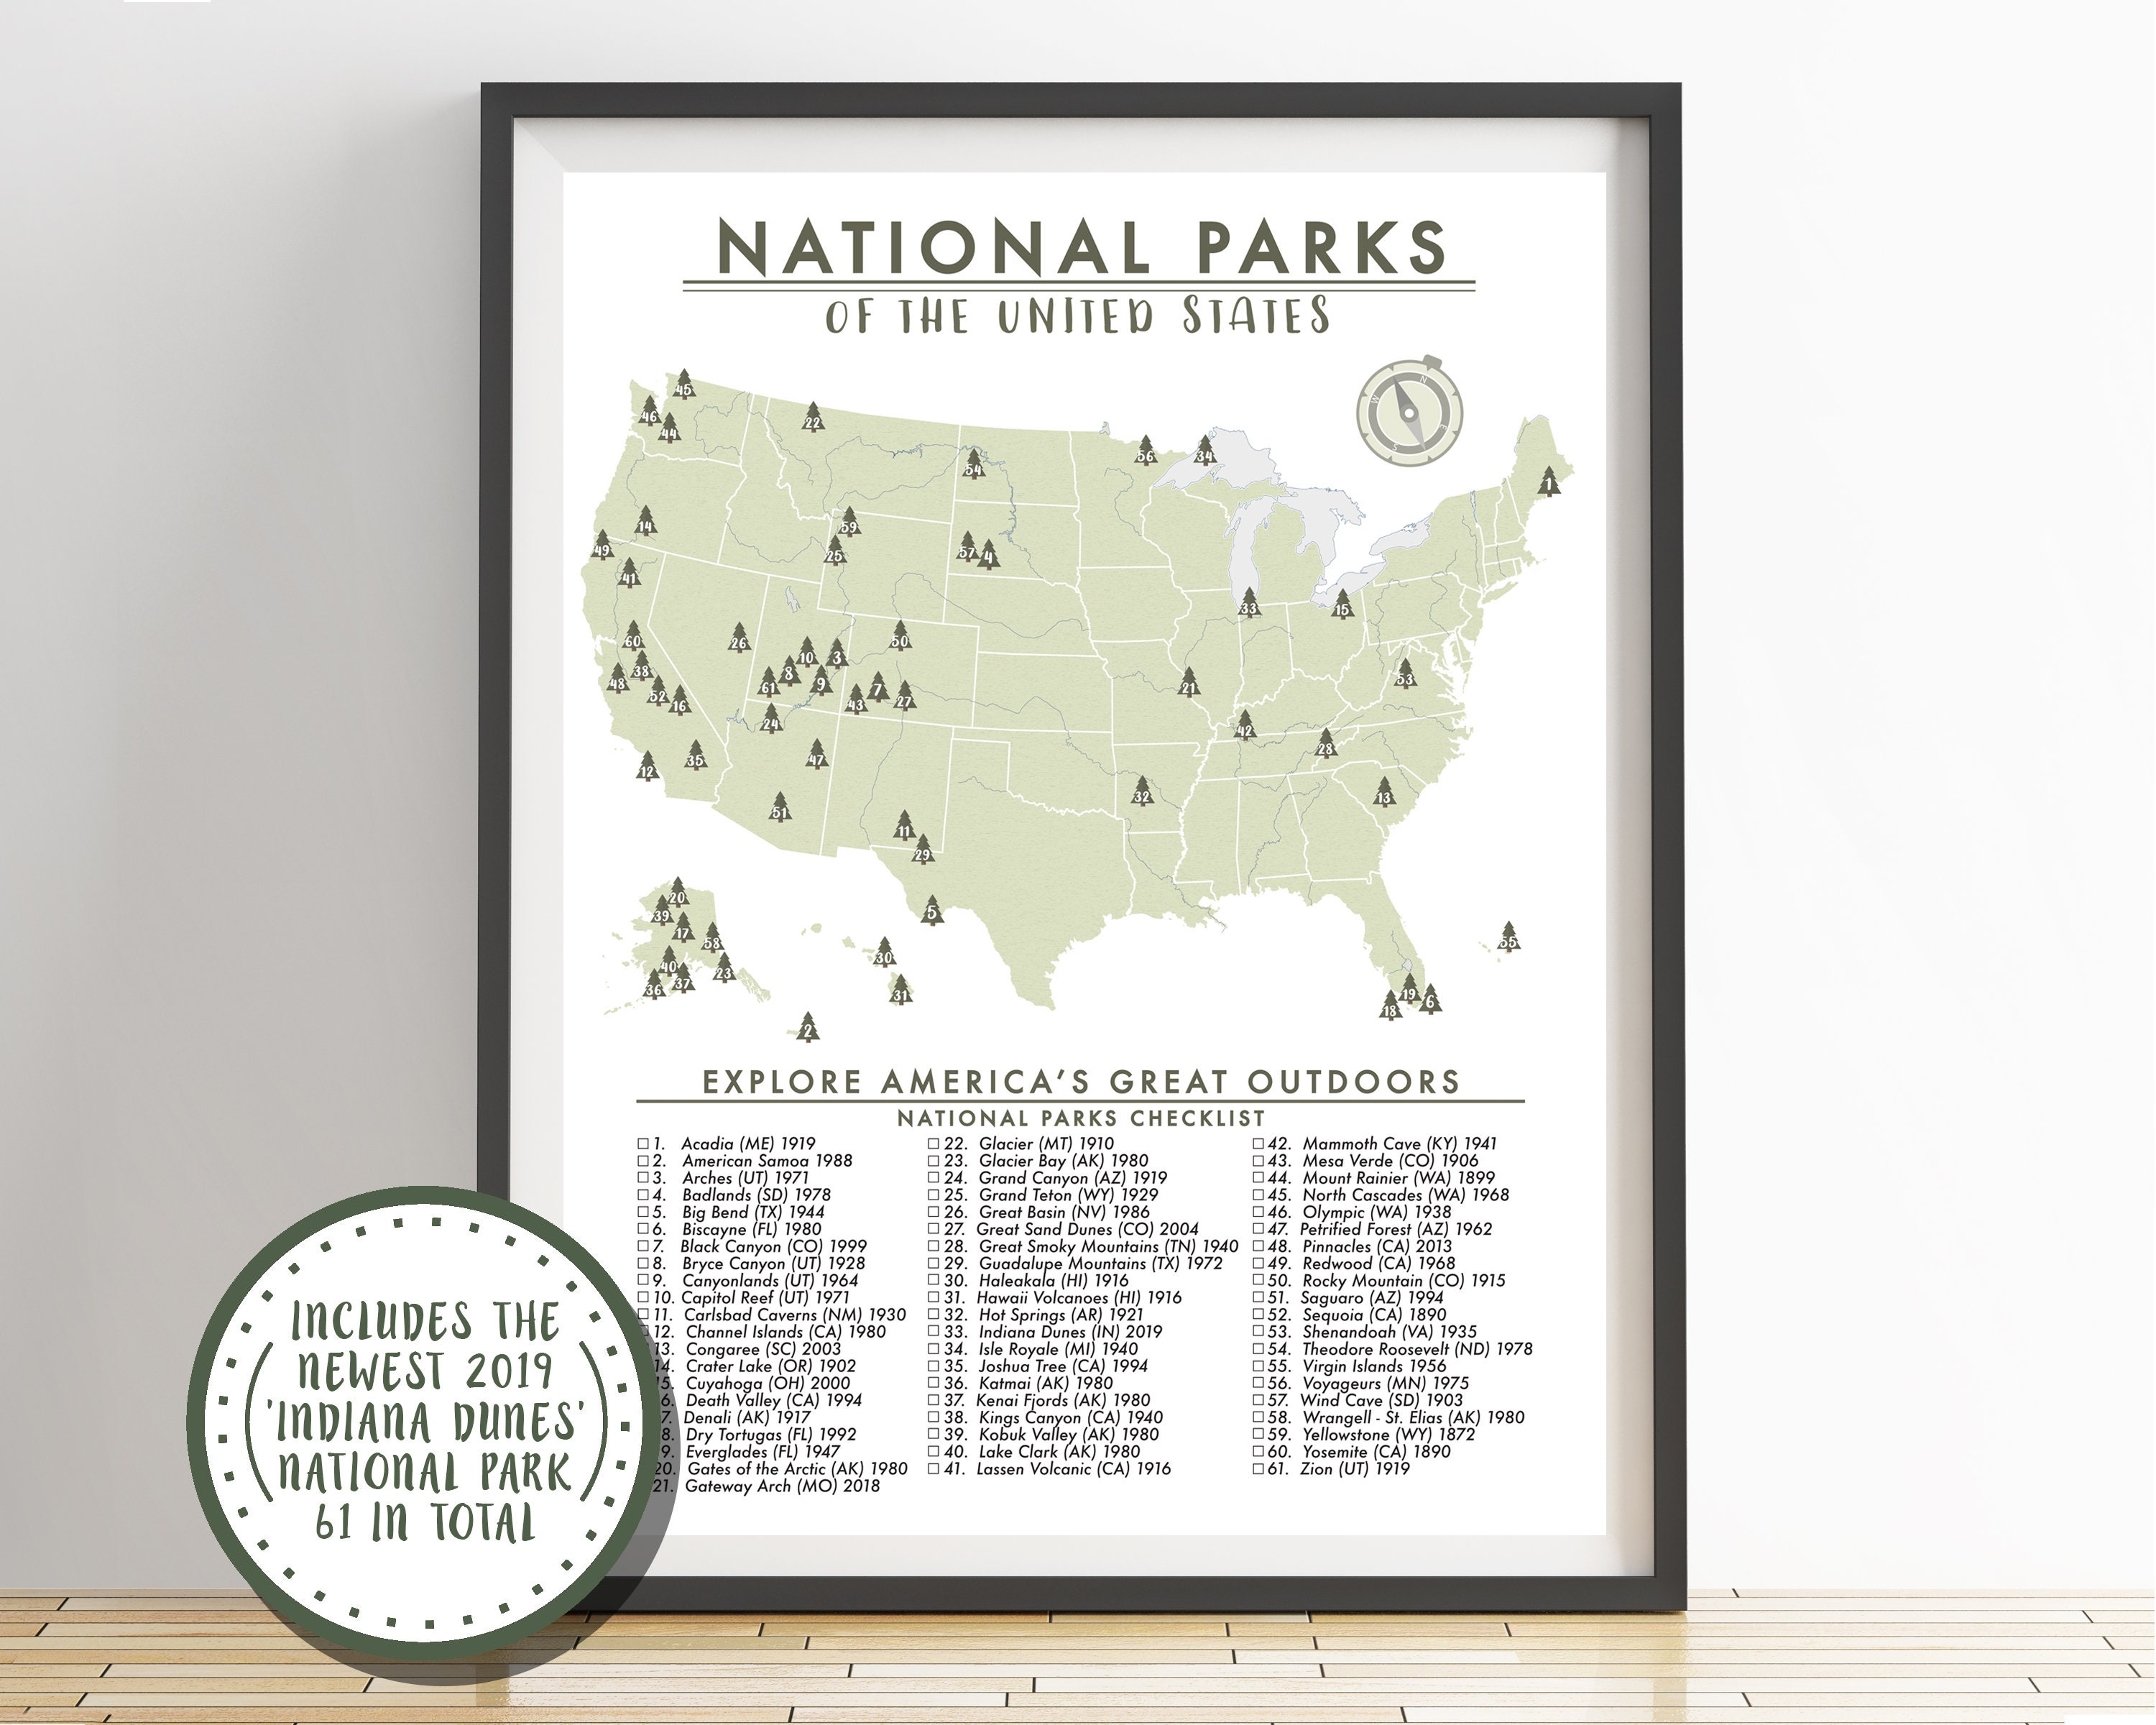 National Parks Map of the United States Parks Checklist | Etsy